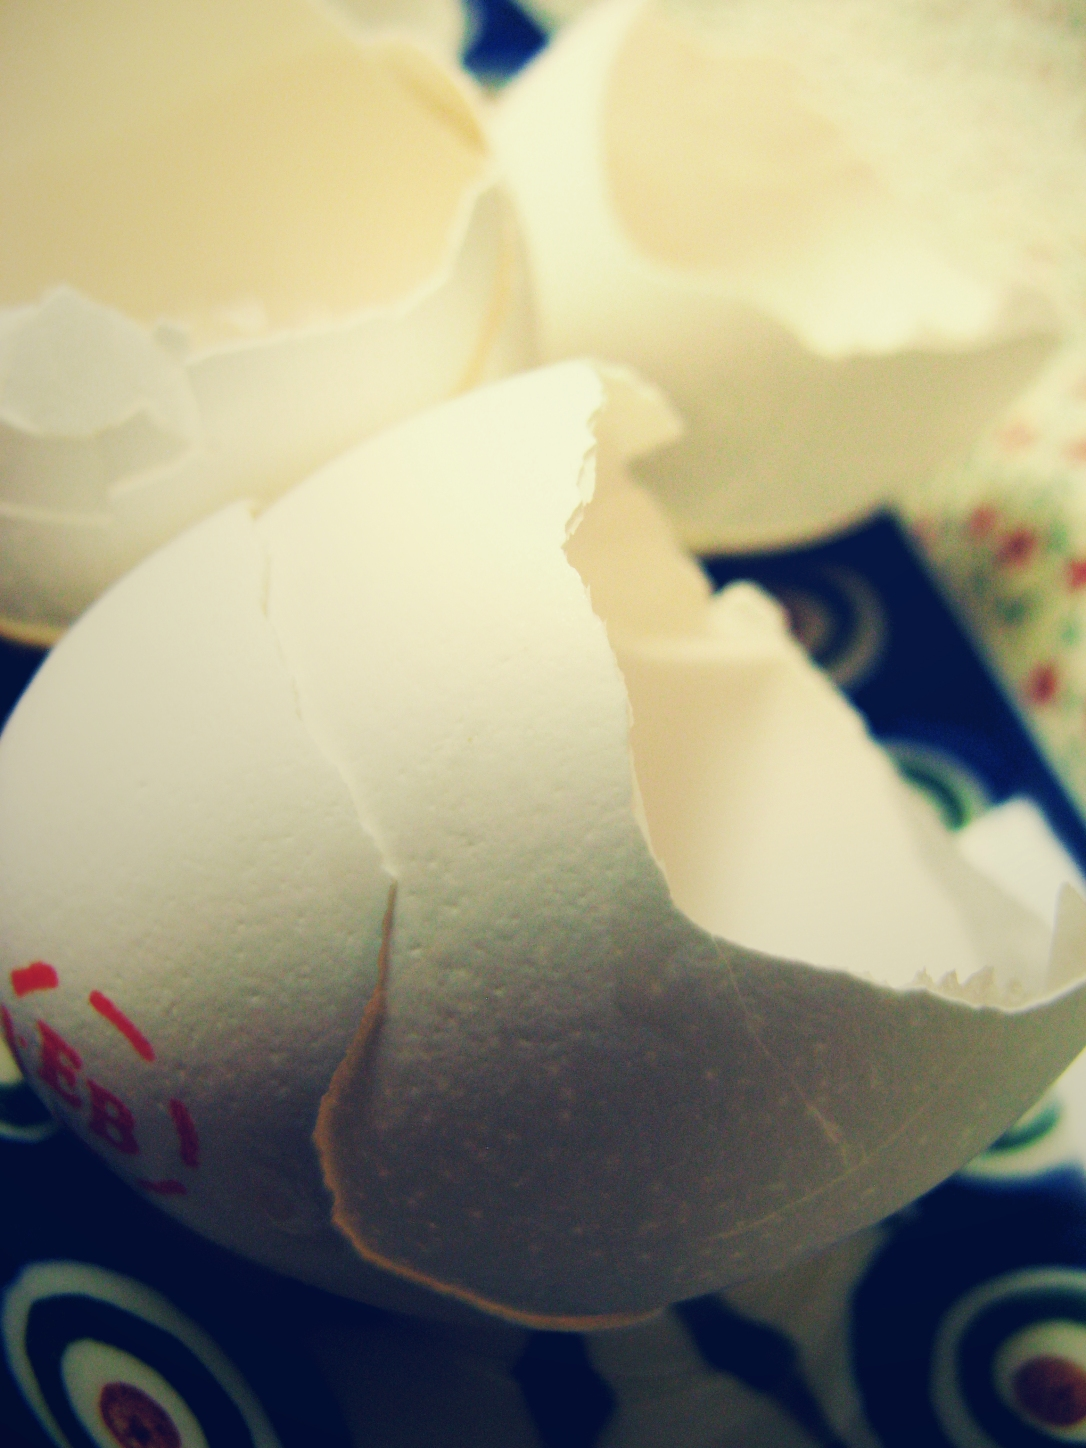 Interesting Litter - August Photo Challenge - Day 4 - The August Break - Photo a Day - Broken Cracked Egg Shells in Soft Light